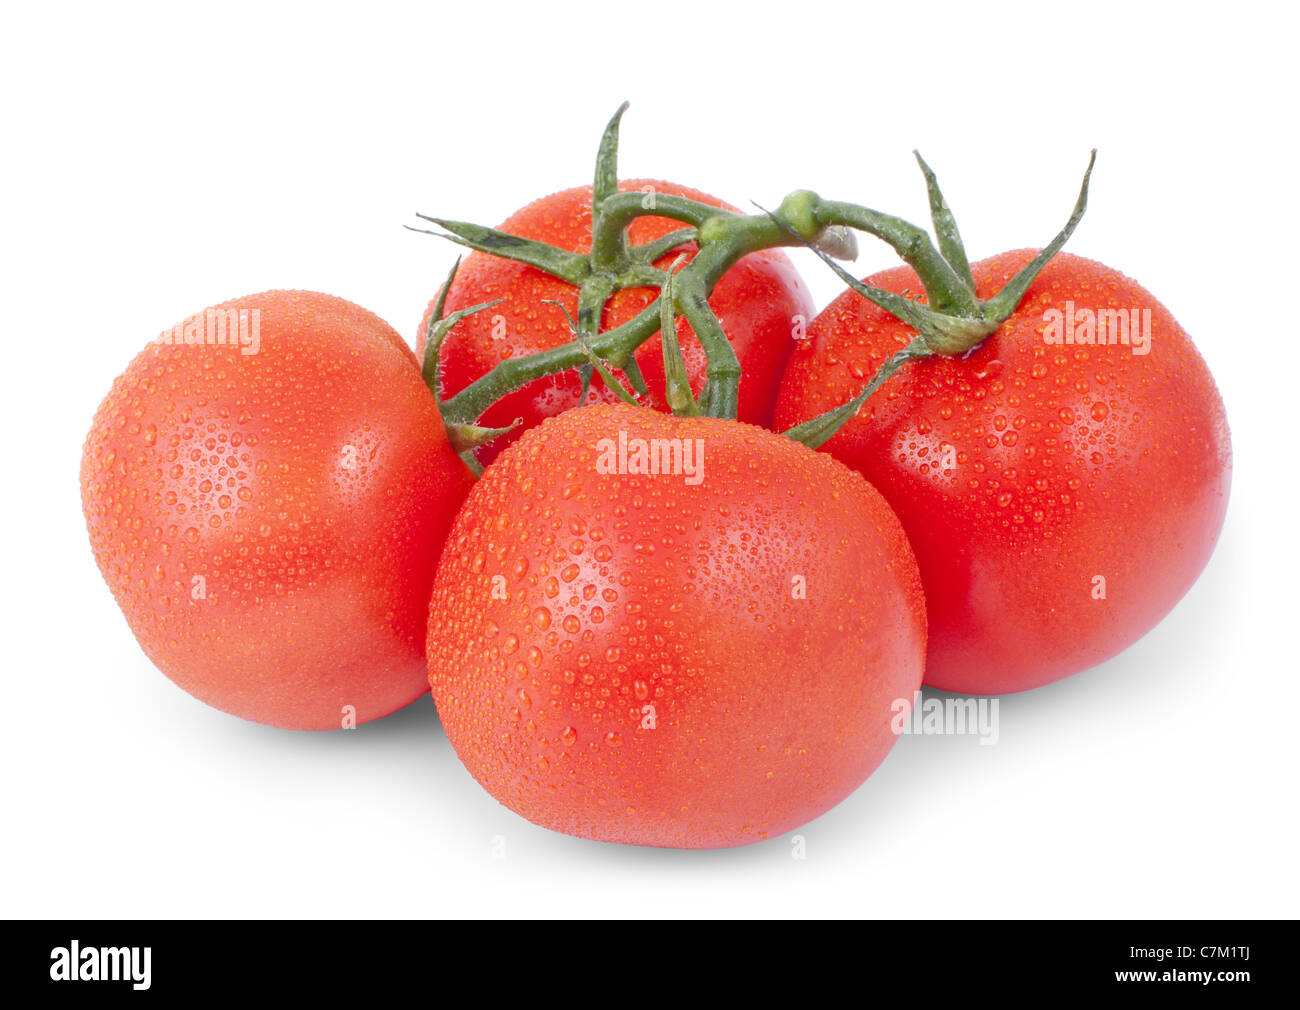 bunch of red tomato isolated on a white background - Stock Image